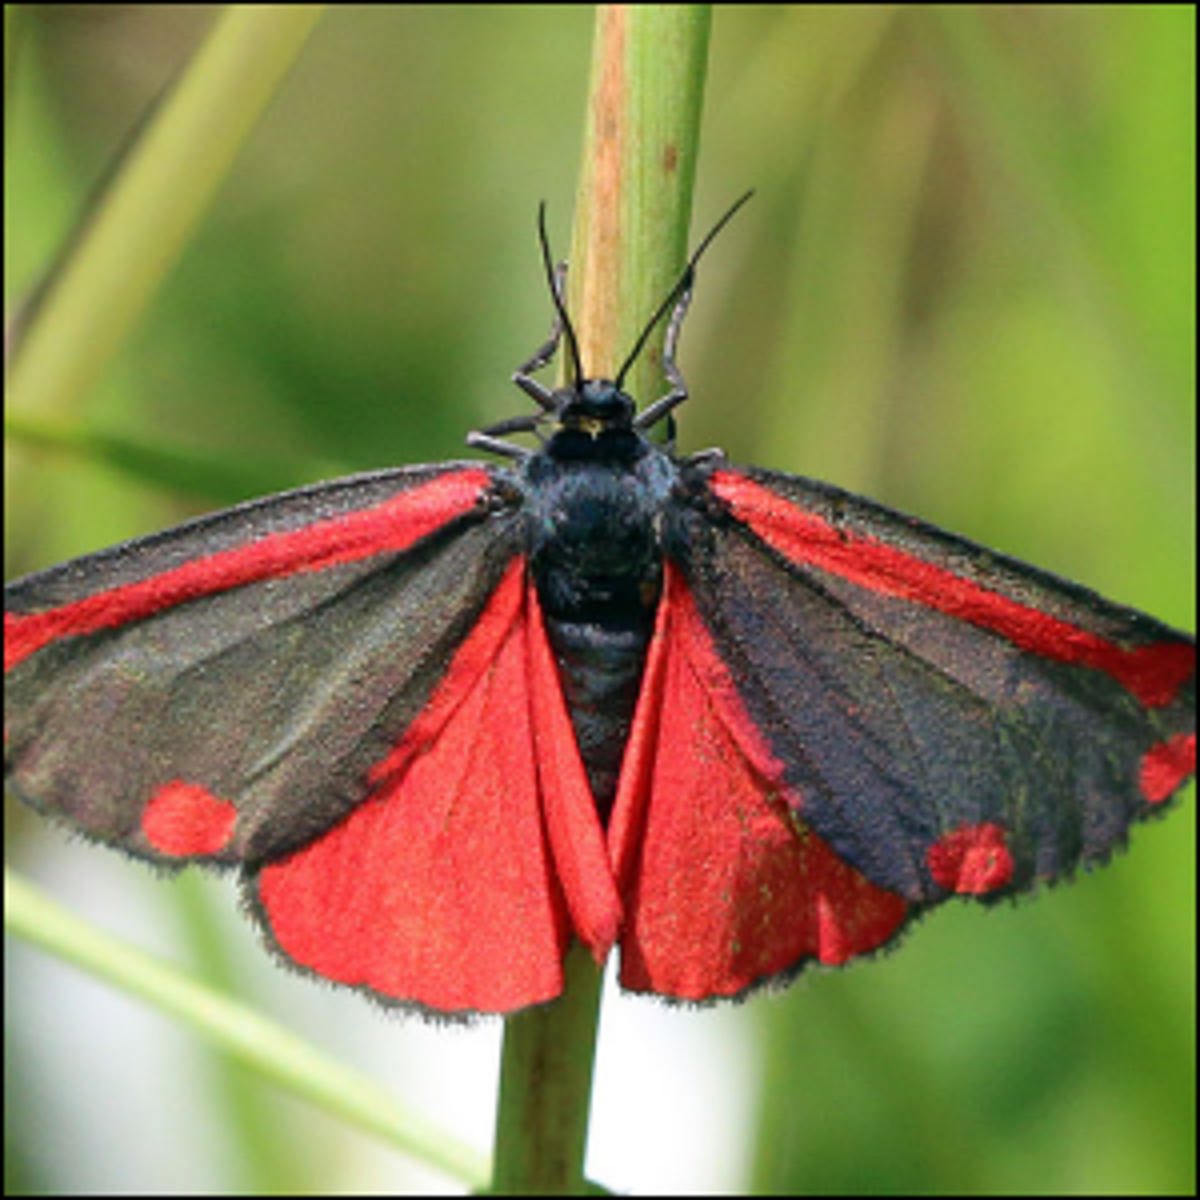 A Cinnabar Moth with its wings spread out.